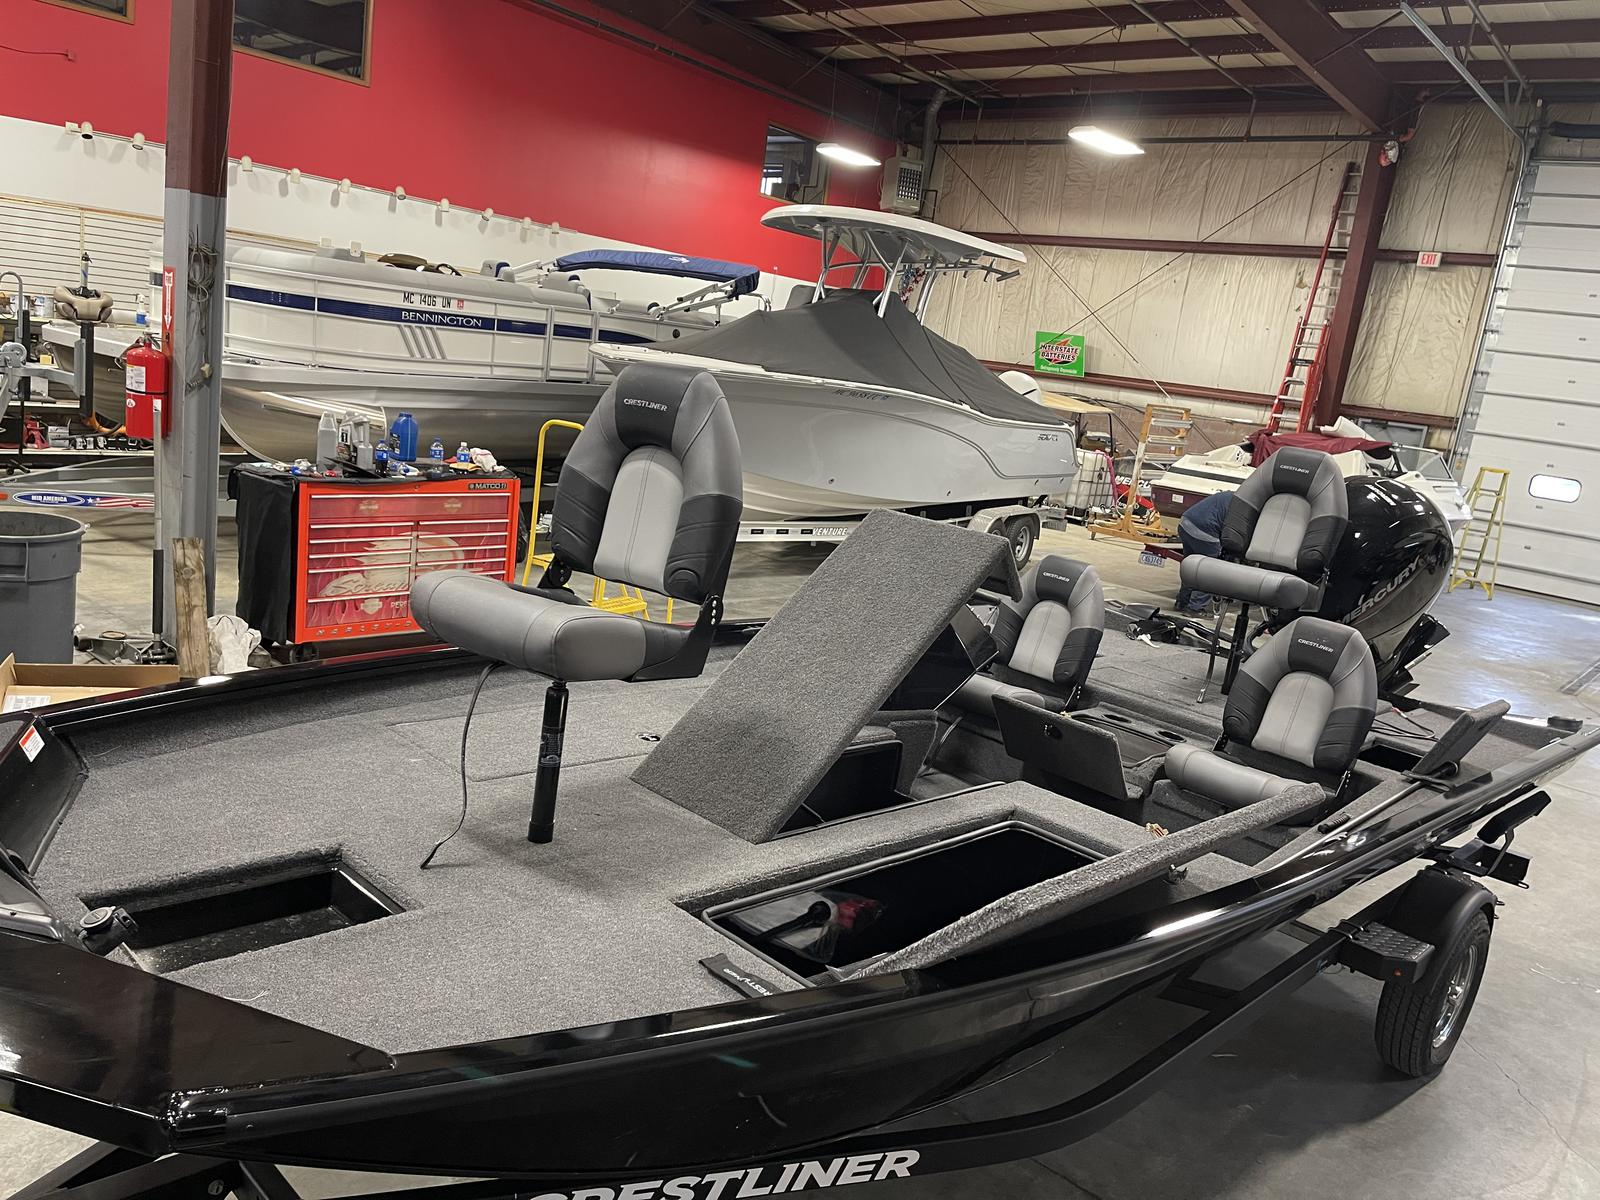 2020 Crestliner boat for sale, model of the boat is XF 189 & Image # 3 of 25